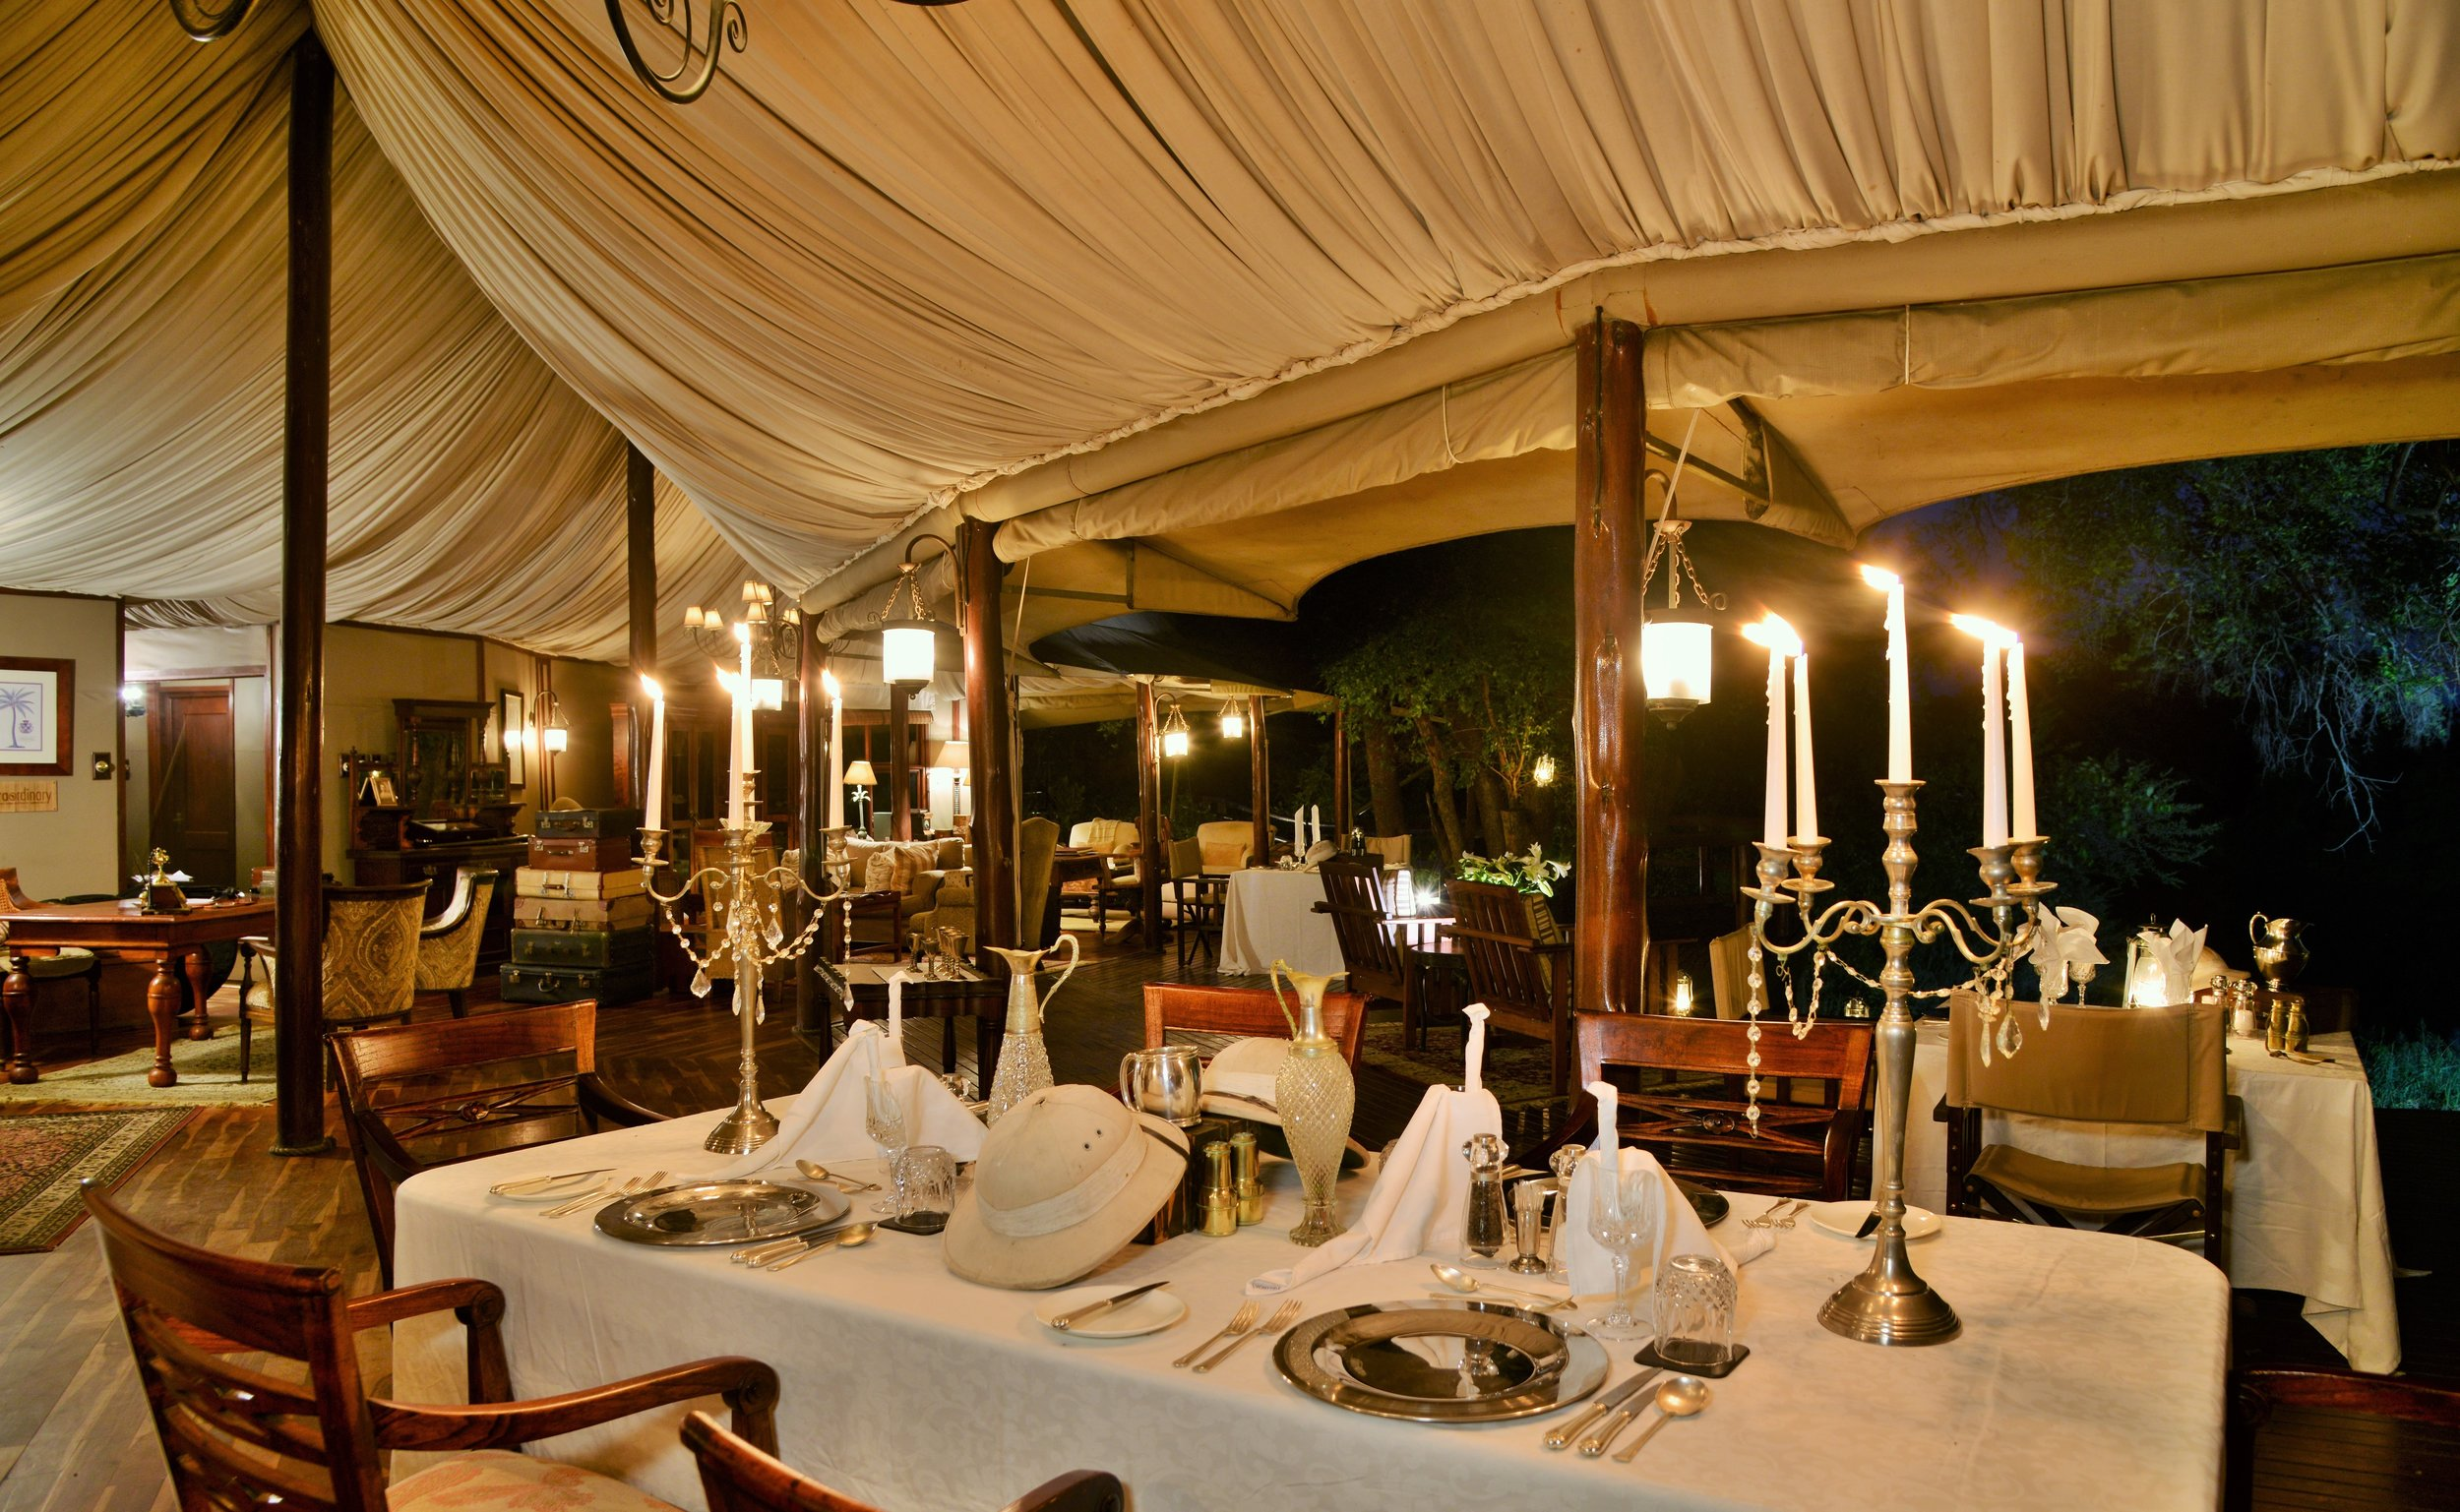 hamiltons_tented_camp_-_dining_room.jpg